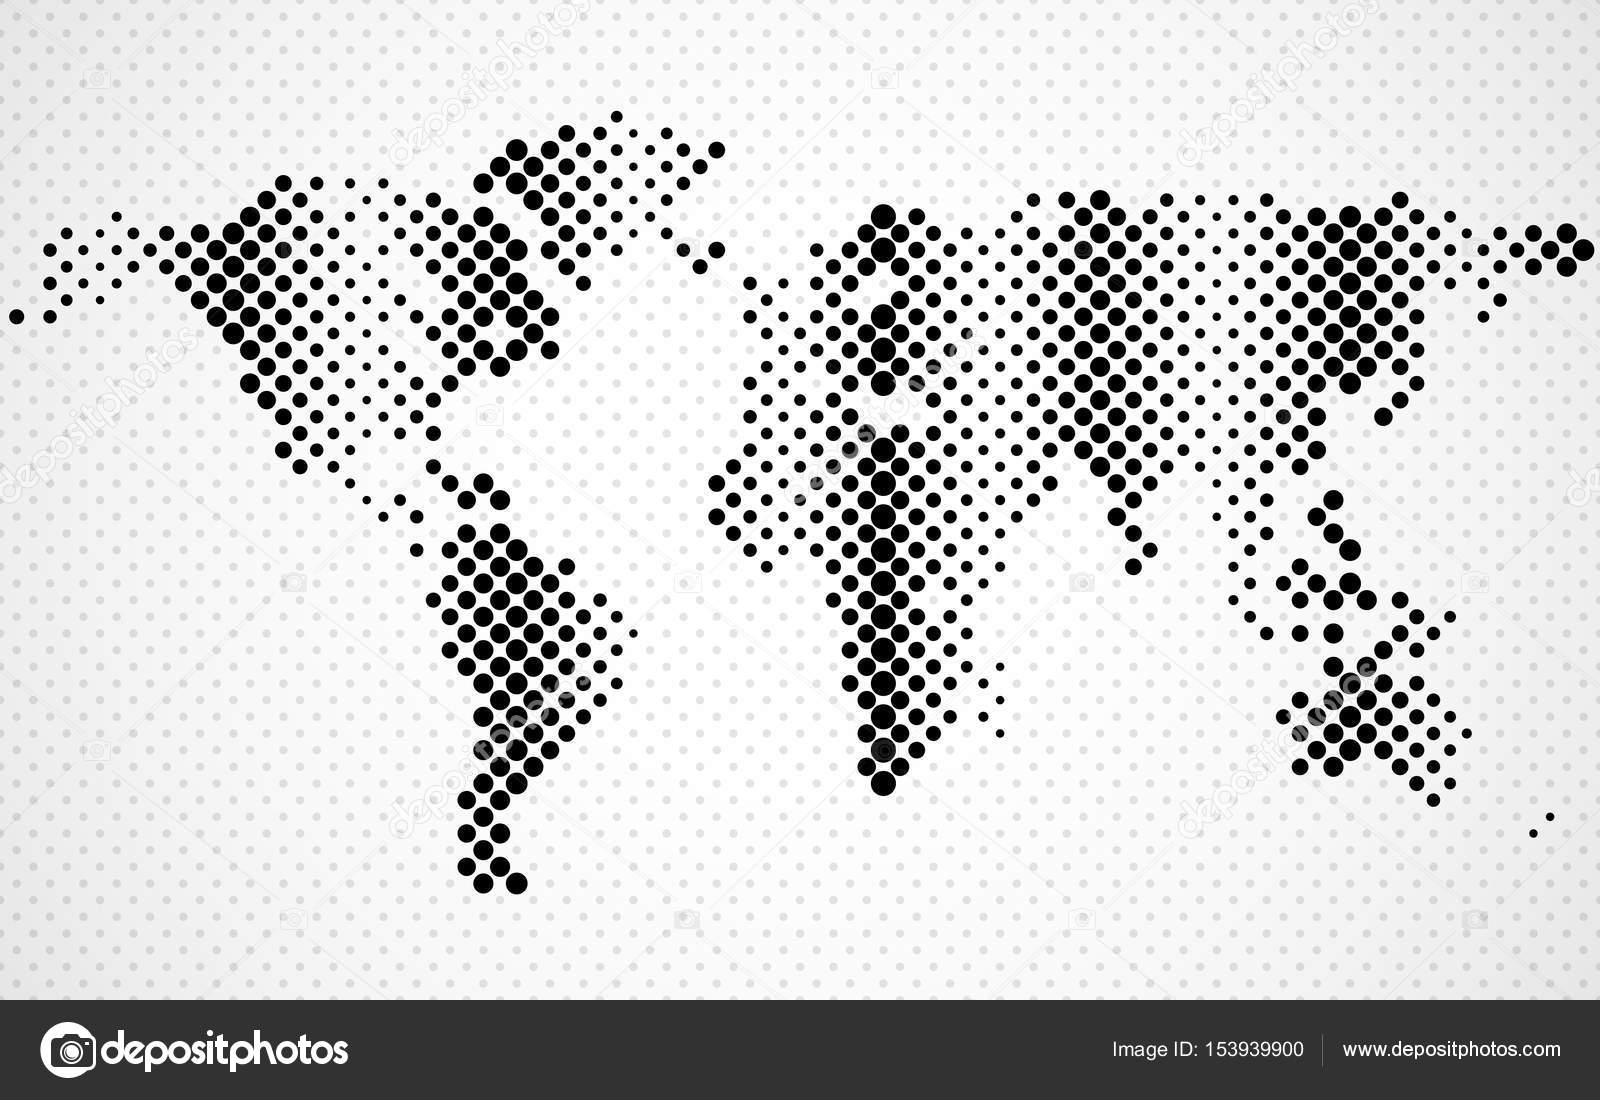 Abstract halftone world map dotted map vector stock vector abstract halftone world map dotted map vector stock vector gumiabroncs Gallery